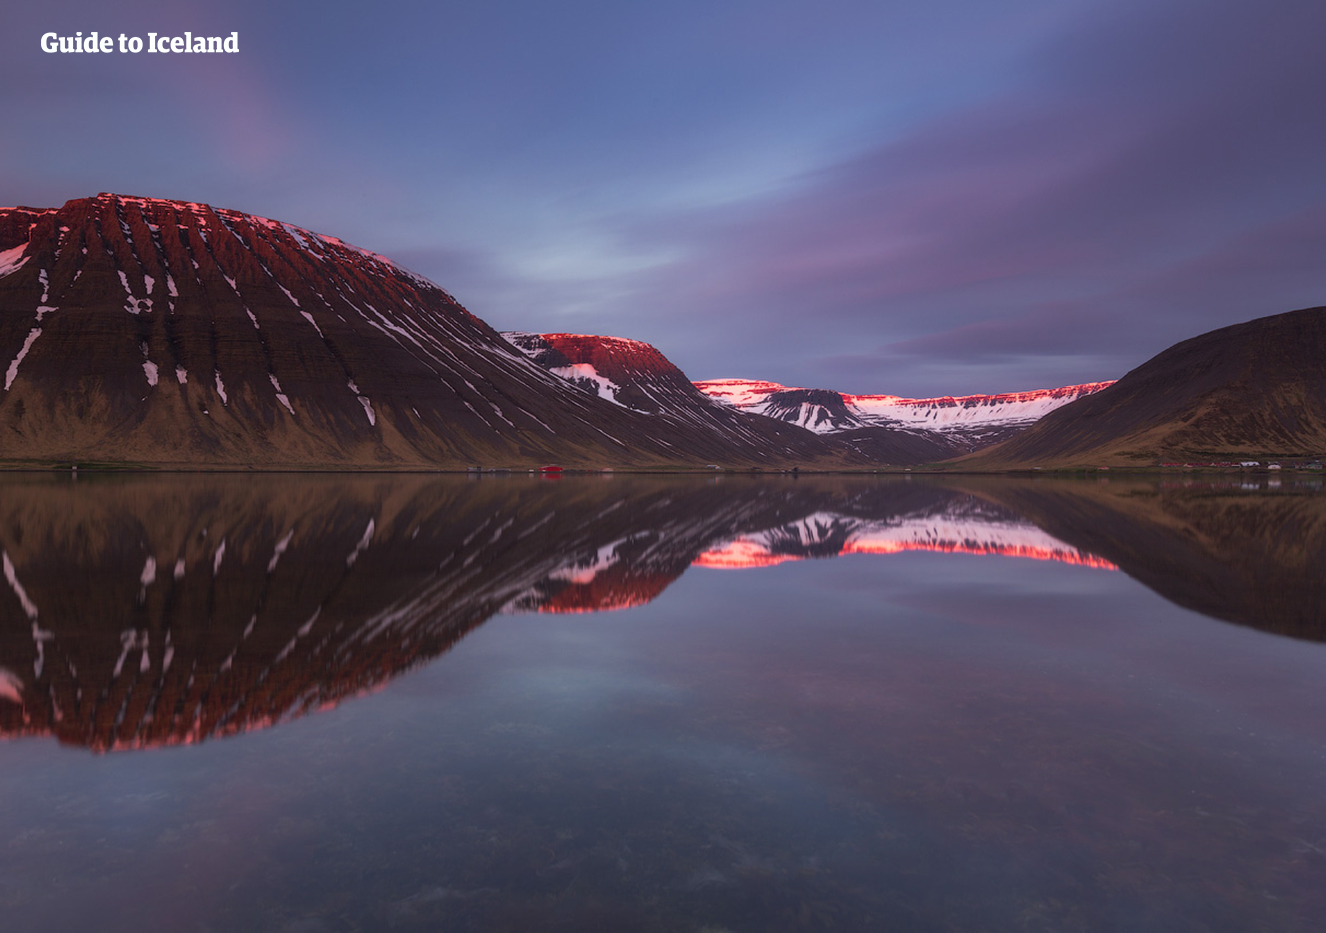 Ísafjörður is both the name of a town and its adjacent fjord, located deep in the remote Westfjords.